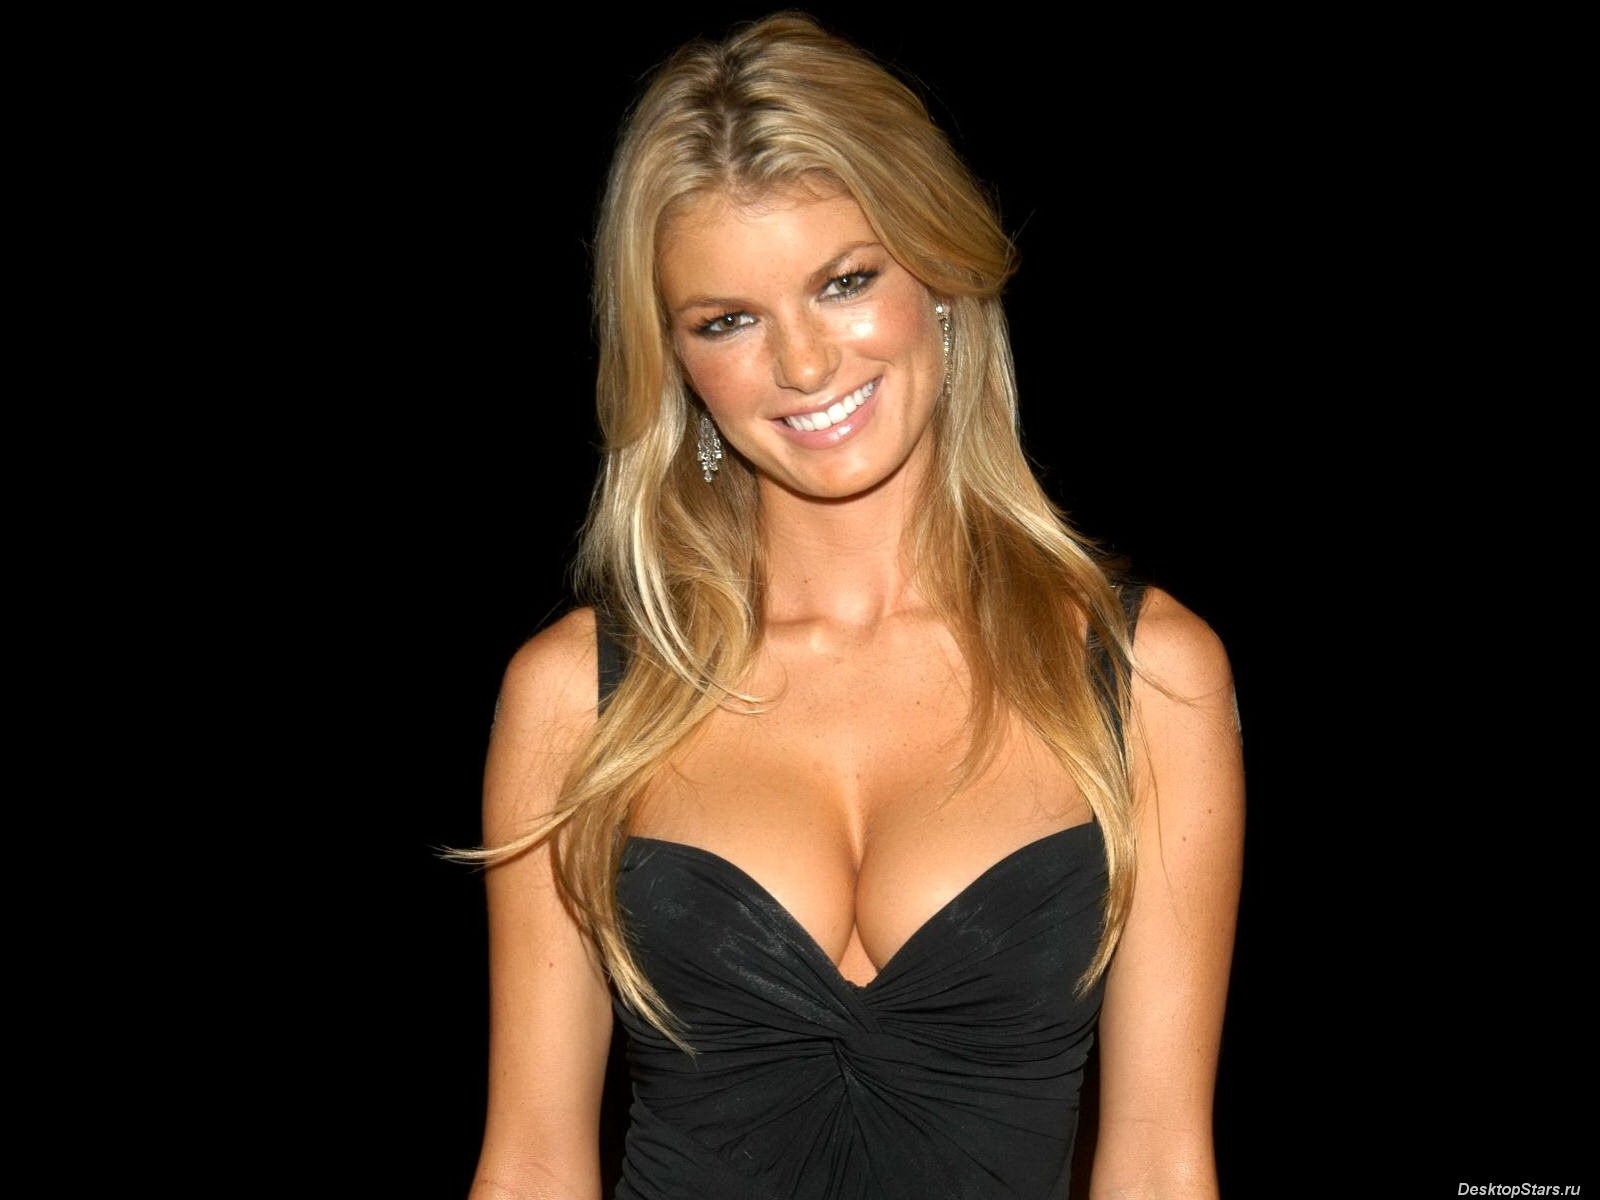 Marisa Miller #011 - 1600x1200 Wallpapers Pictures Photos Images